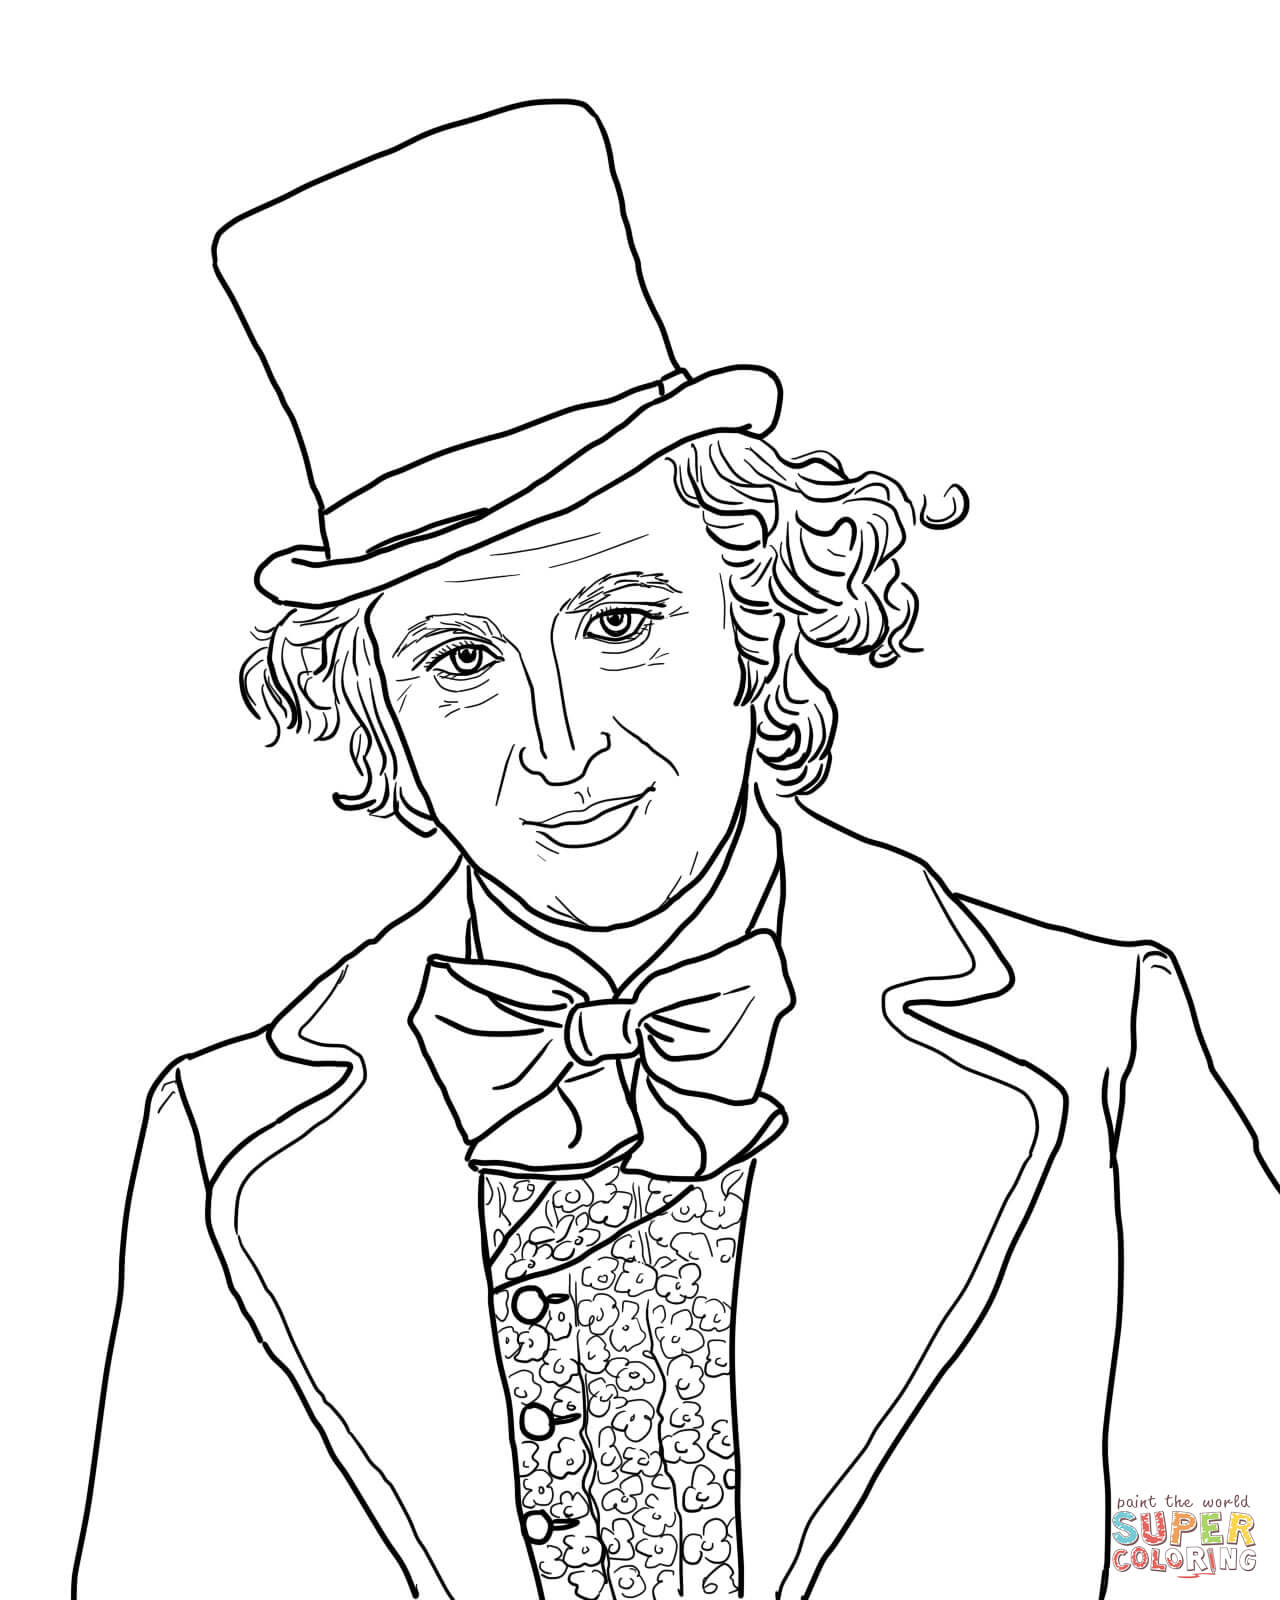 Charlie Y La Fabrica De Chocolate Libro Willy Wonka With Gene Wilder Coloring Page | Free